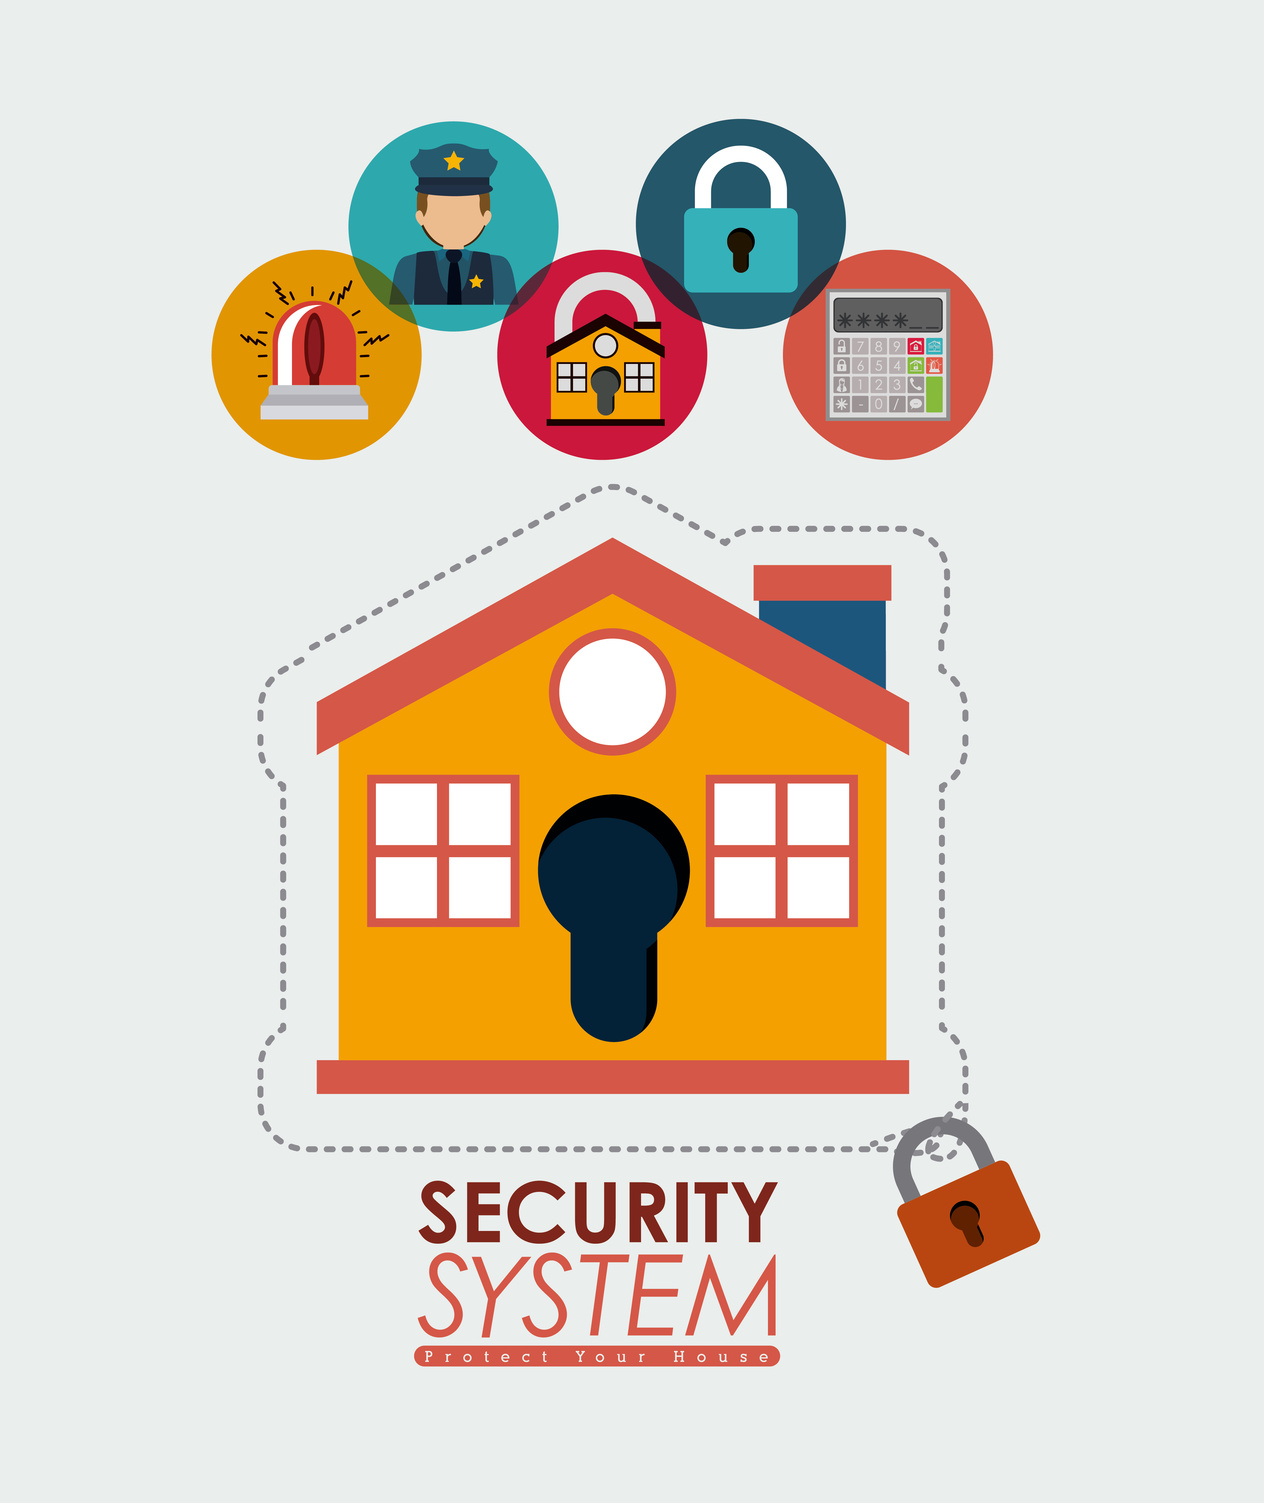 Safe Side Security, Inc : Home Security Equipment - Identify